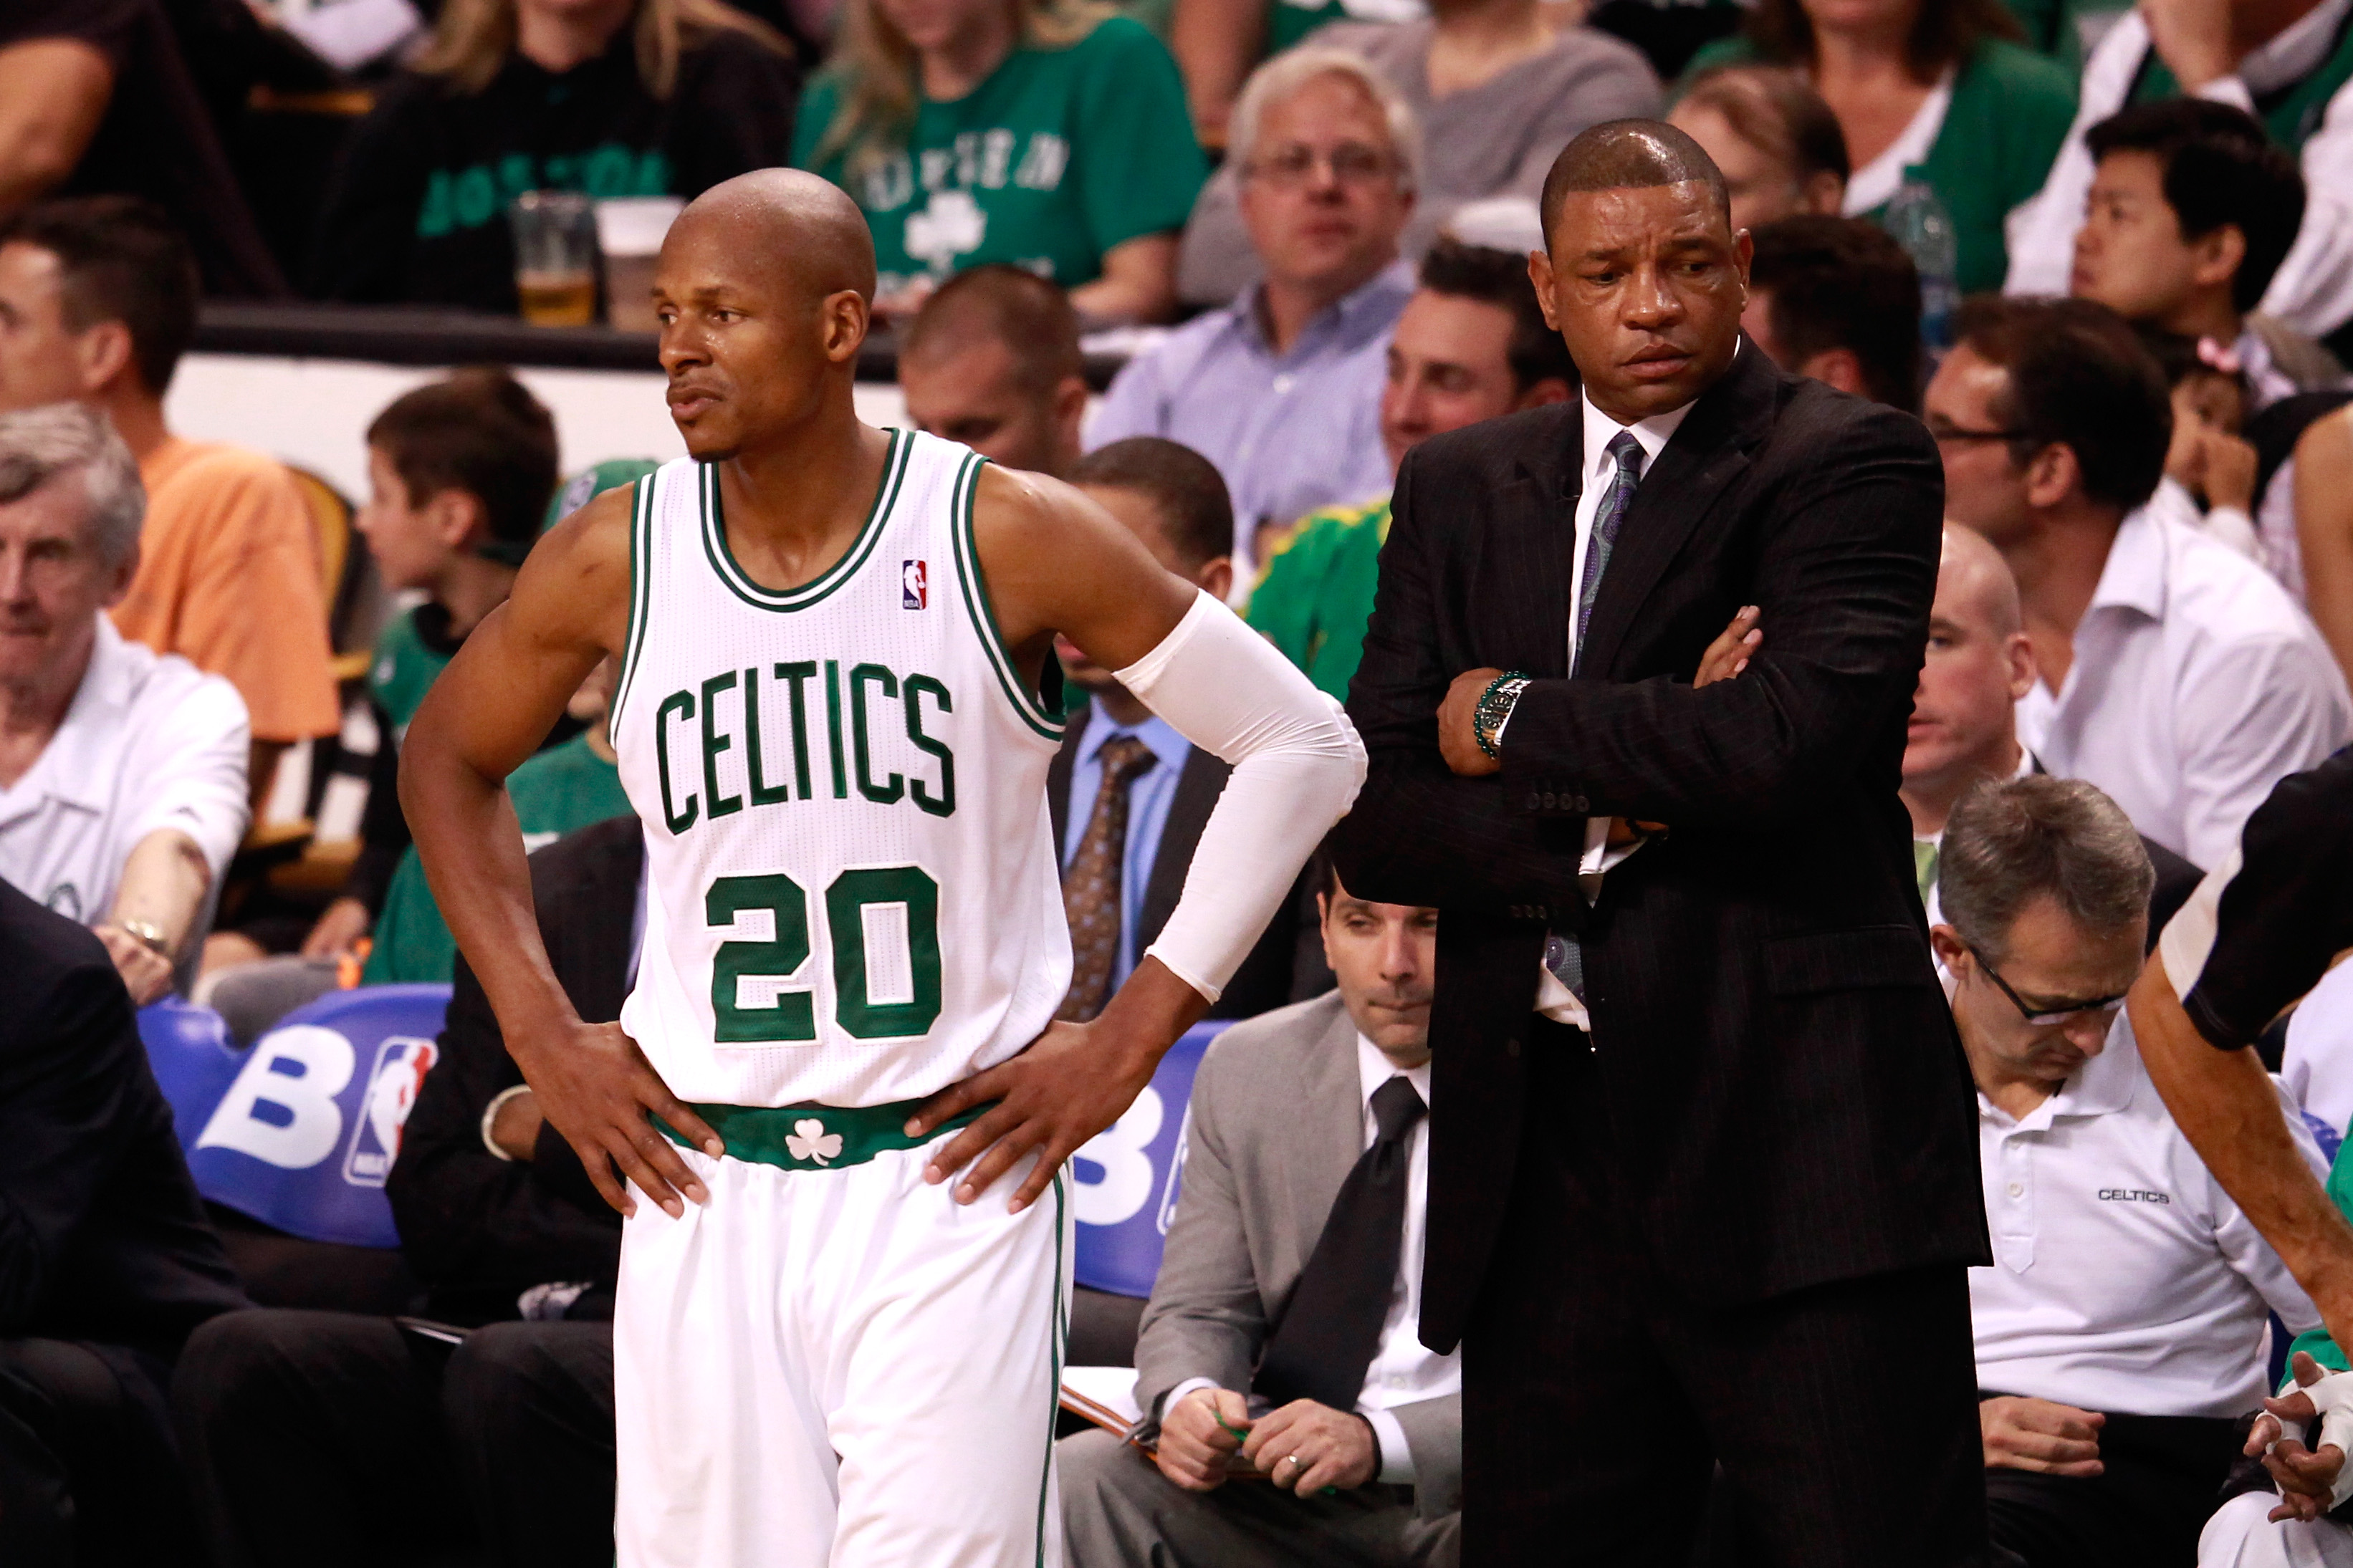 Celtics coach Doc Rivers had hoped Ray Allen would join Kevin Garnett in re-signing. (Getty Images)